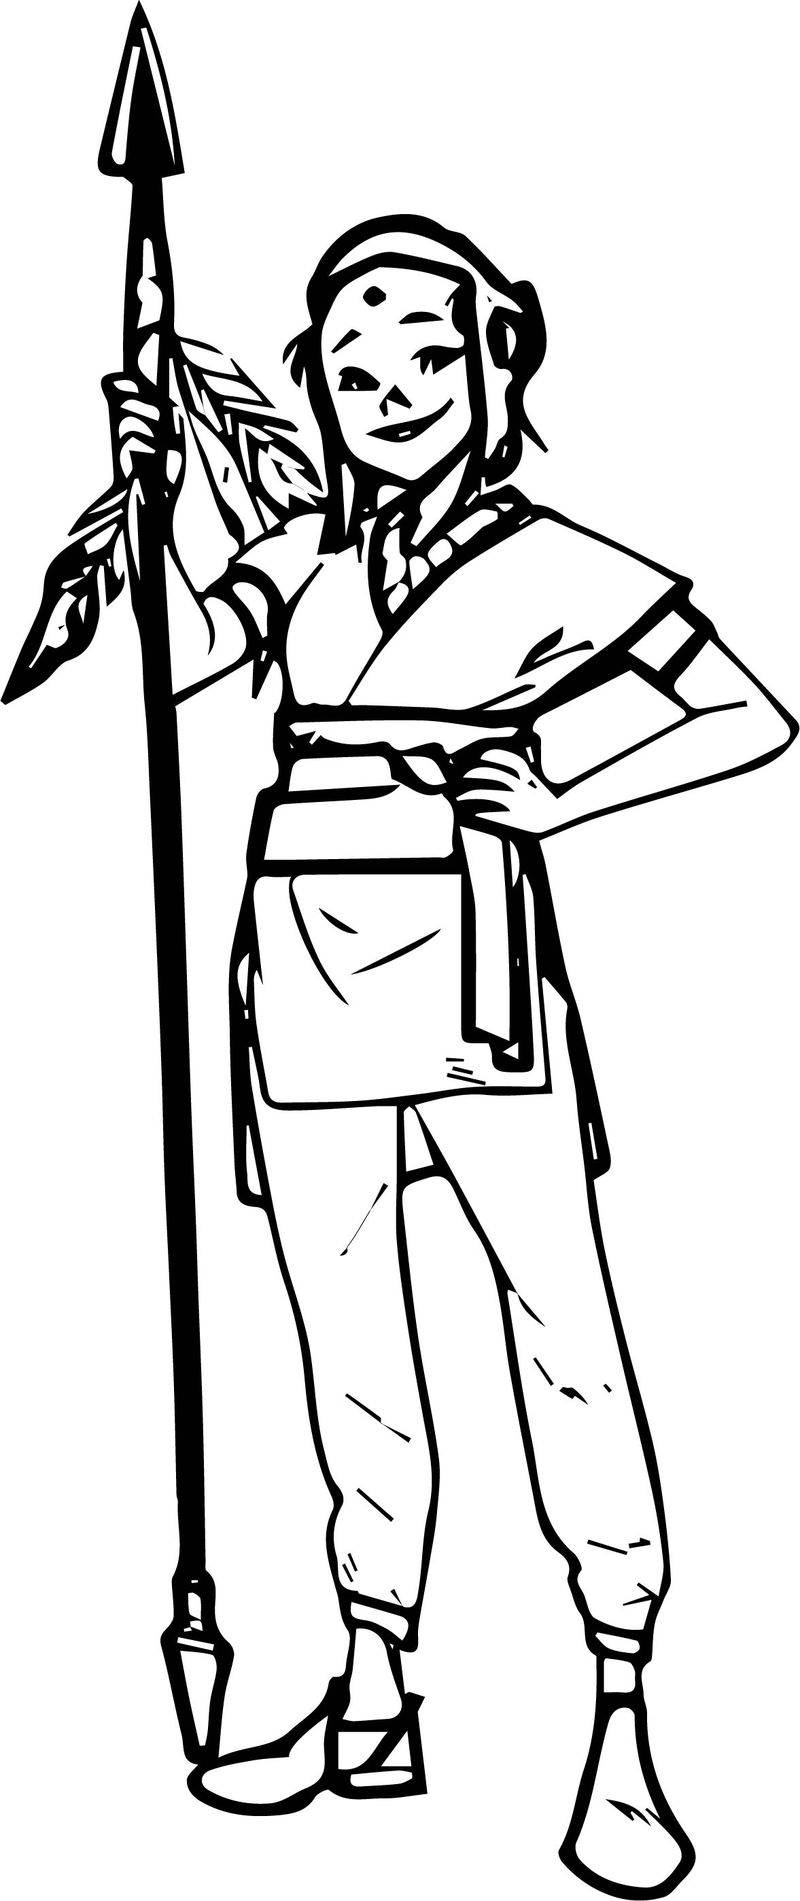 Character Warrior Woman Coloring Page